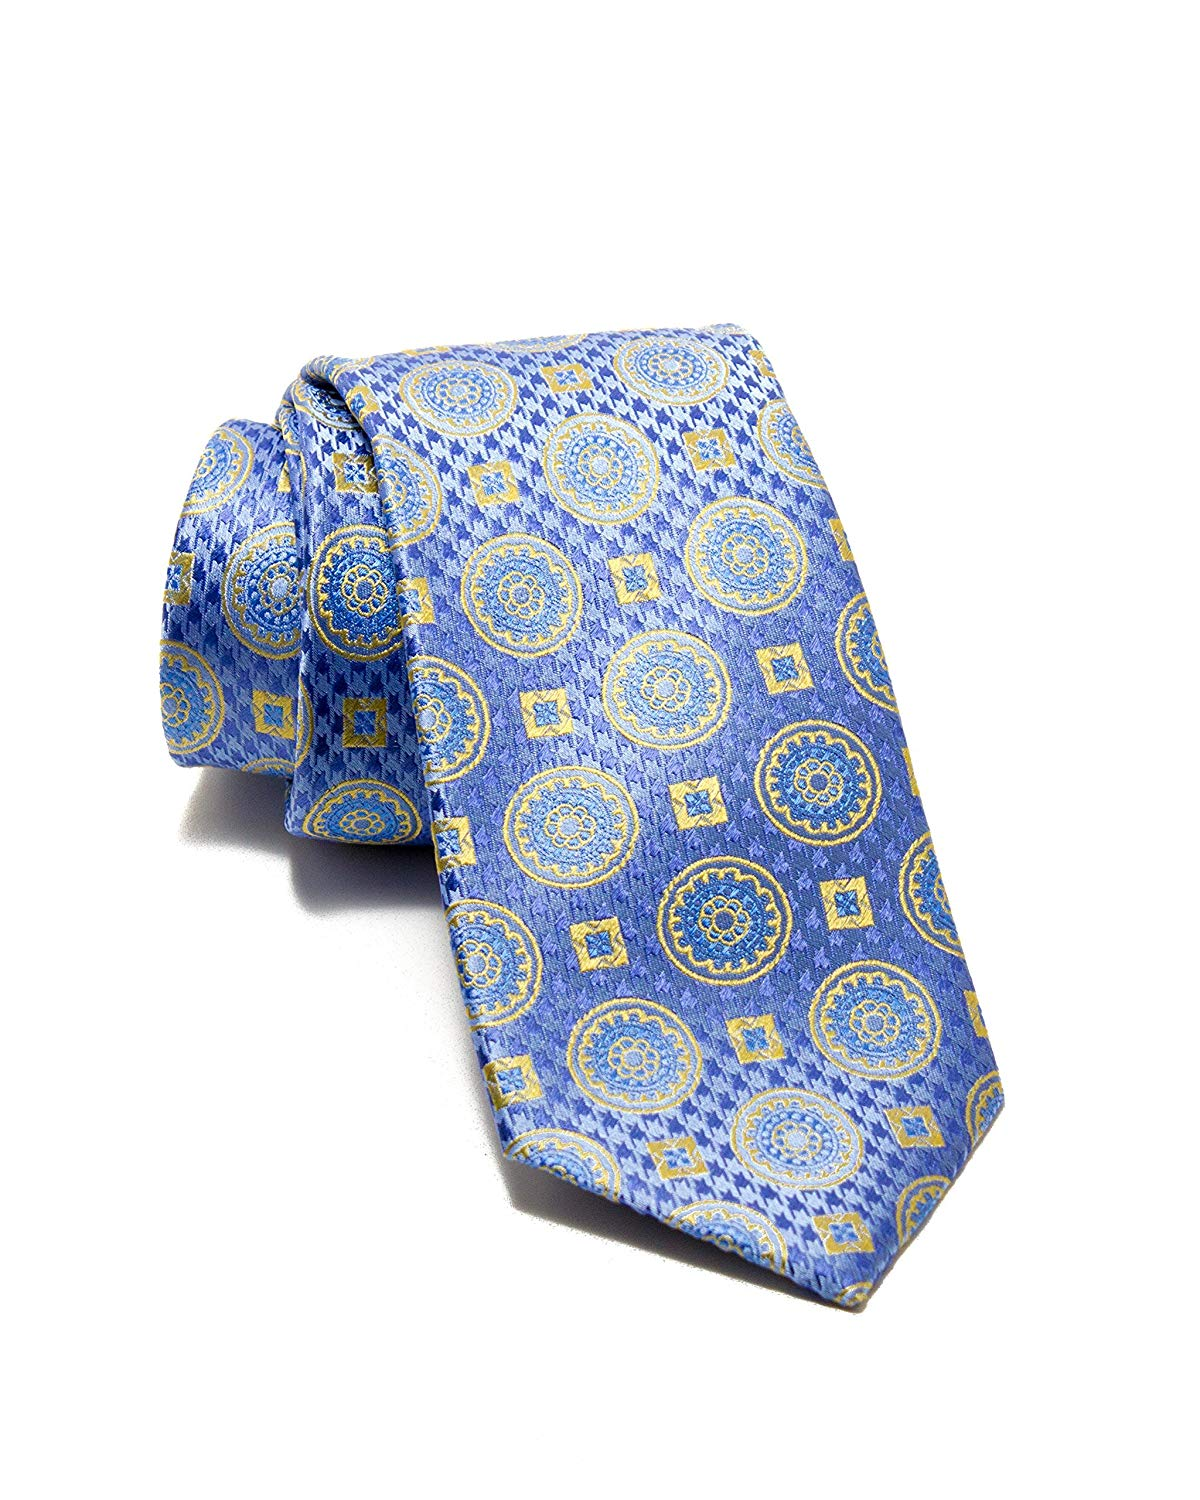 ba3e63e3e57 Get Quotations · Mens Silk Ties Luxury Ties 100% Silk Woven Boxed Business  Groom Ties Formal Mens Ties